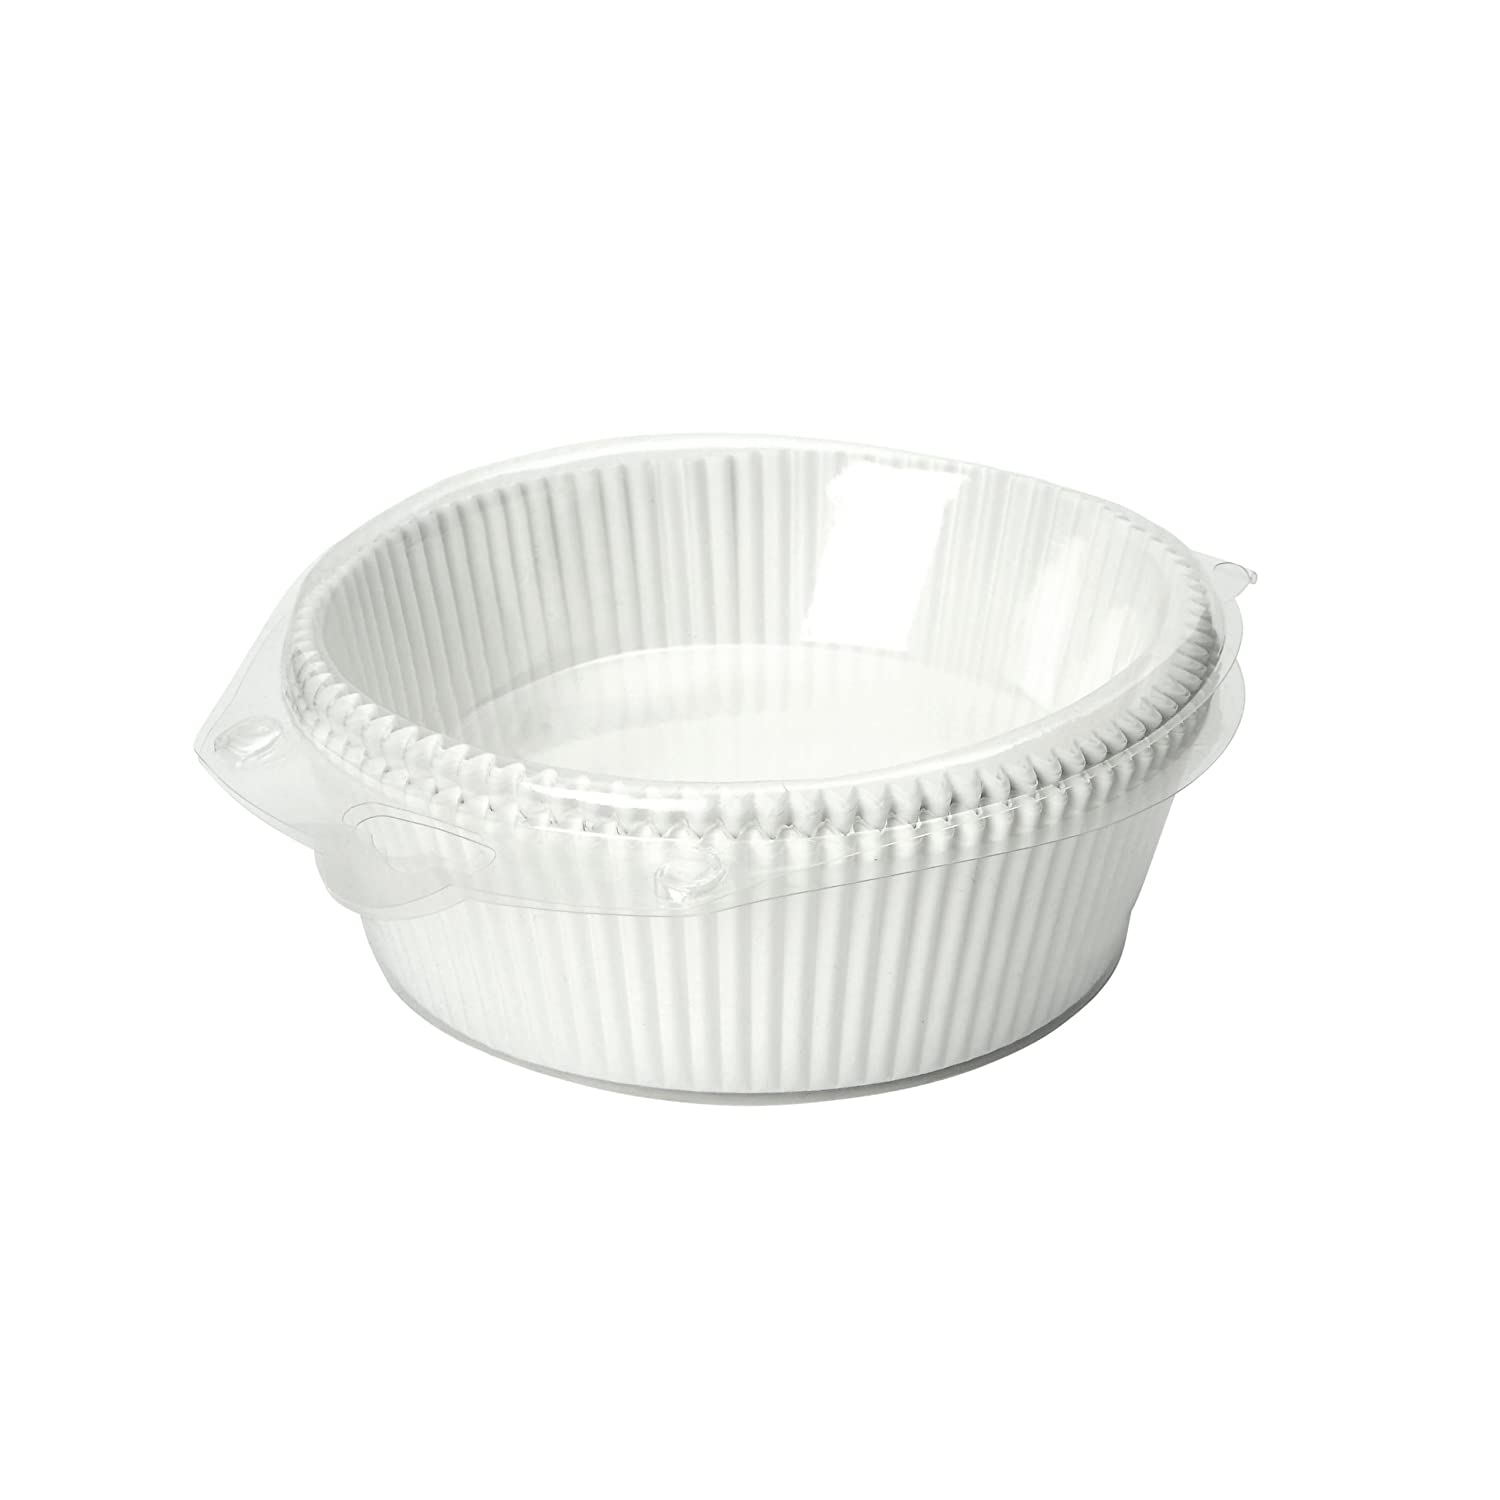 Dexam 17 x 6.5 cm Paper 18 cm Round Cake Liners Siliconised Paper, Pack of 50 17841132